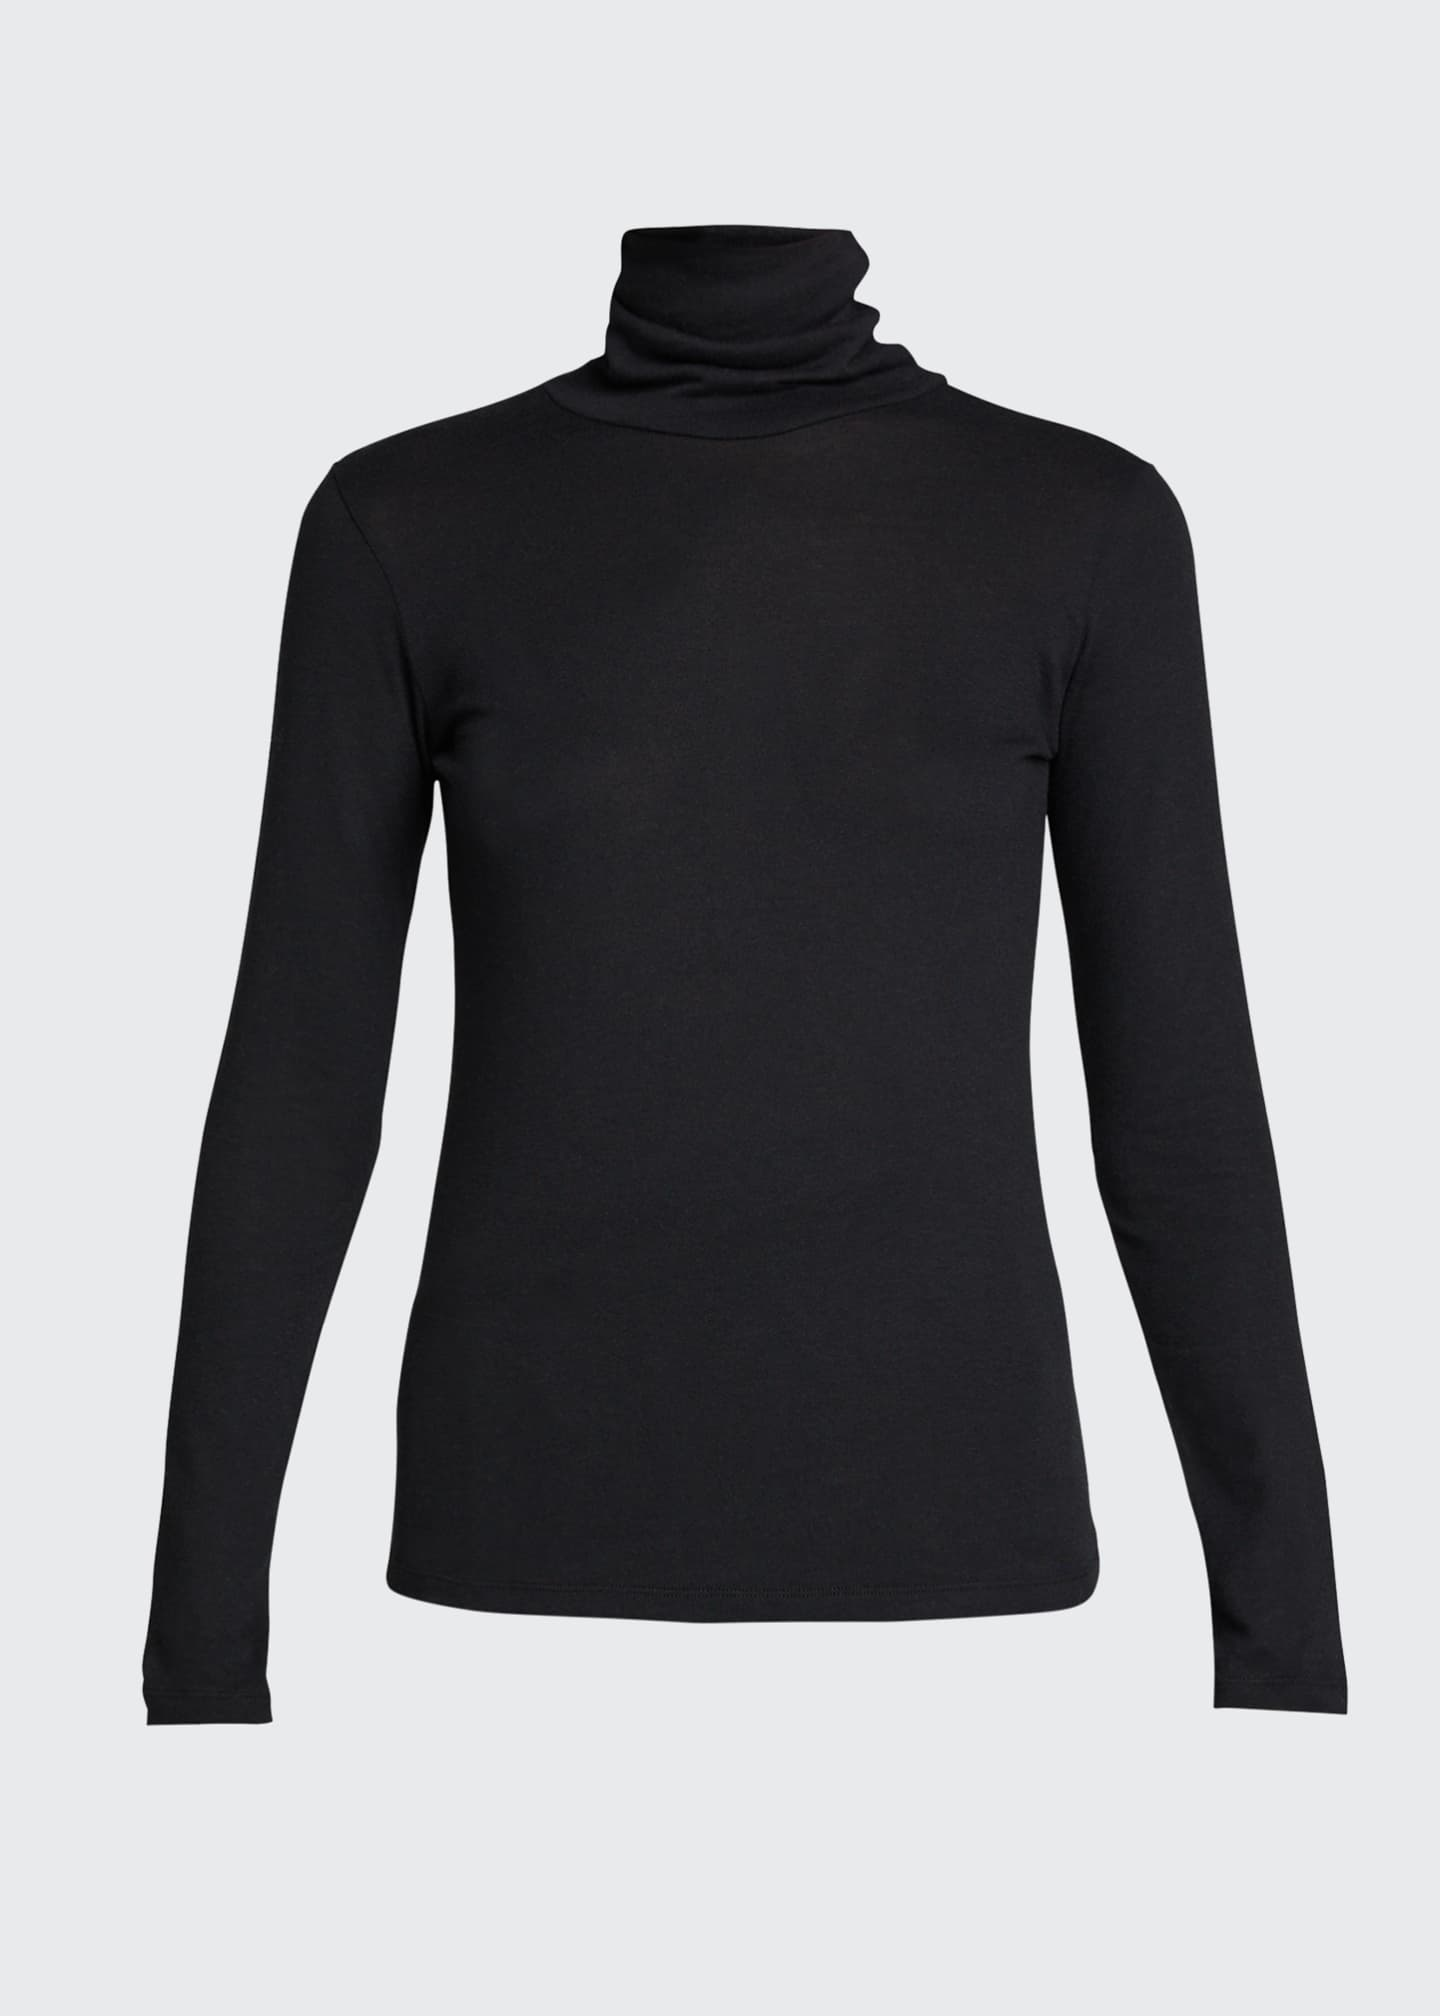 Image 5 of 5: Cotton-Cashmere Long Sleeve Turtleneck Top